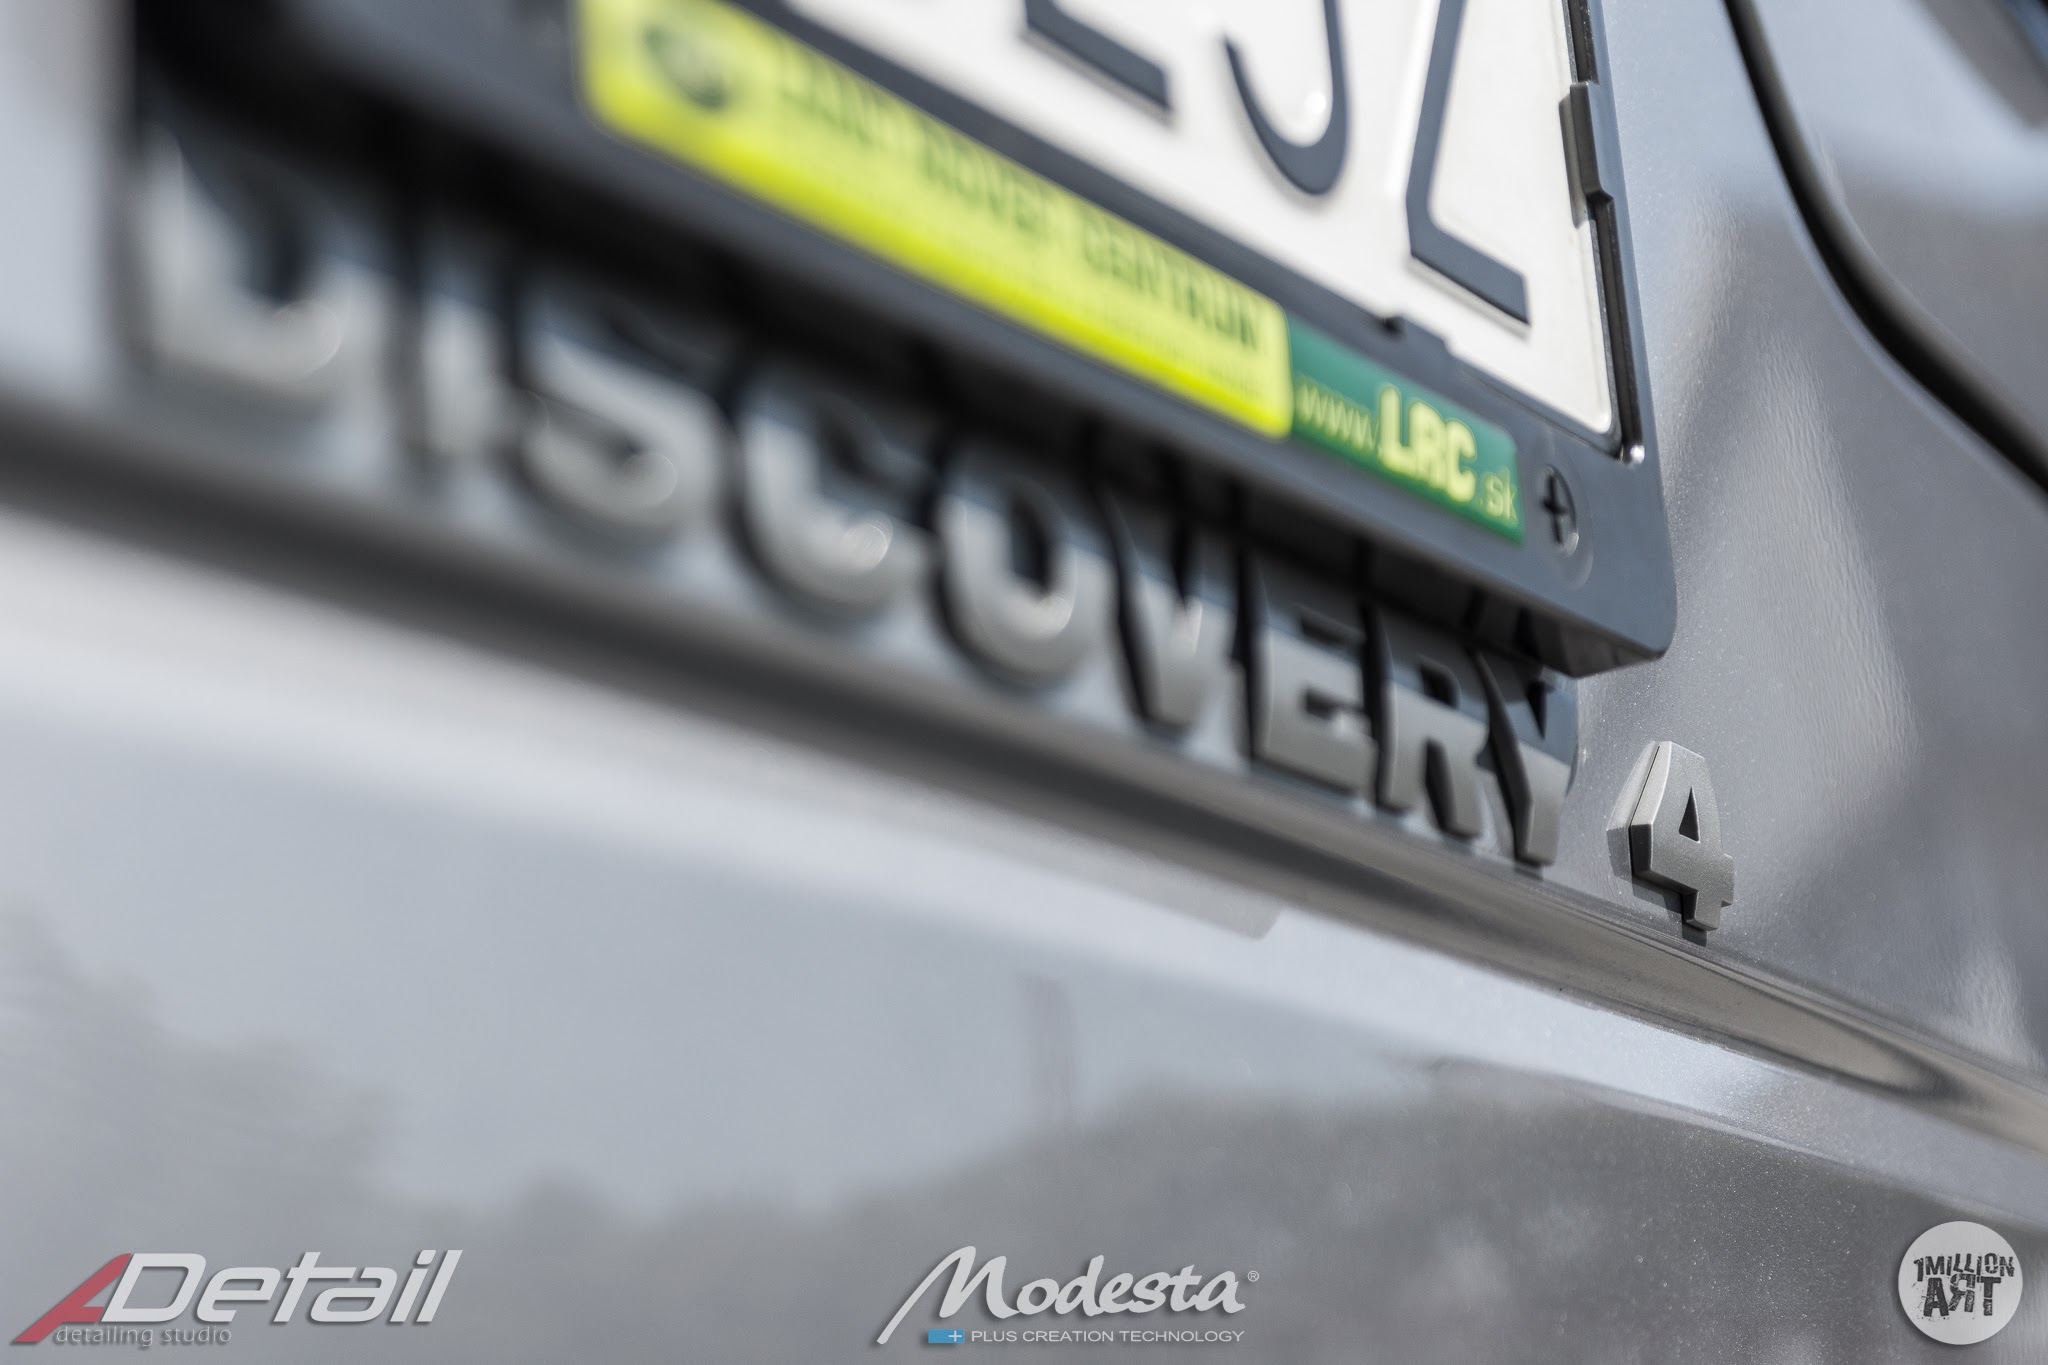 1MillionArt_ADetail_LR-Discovery4_13